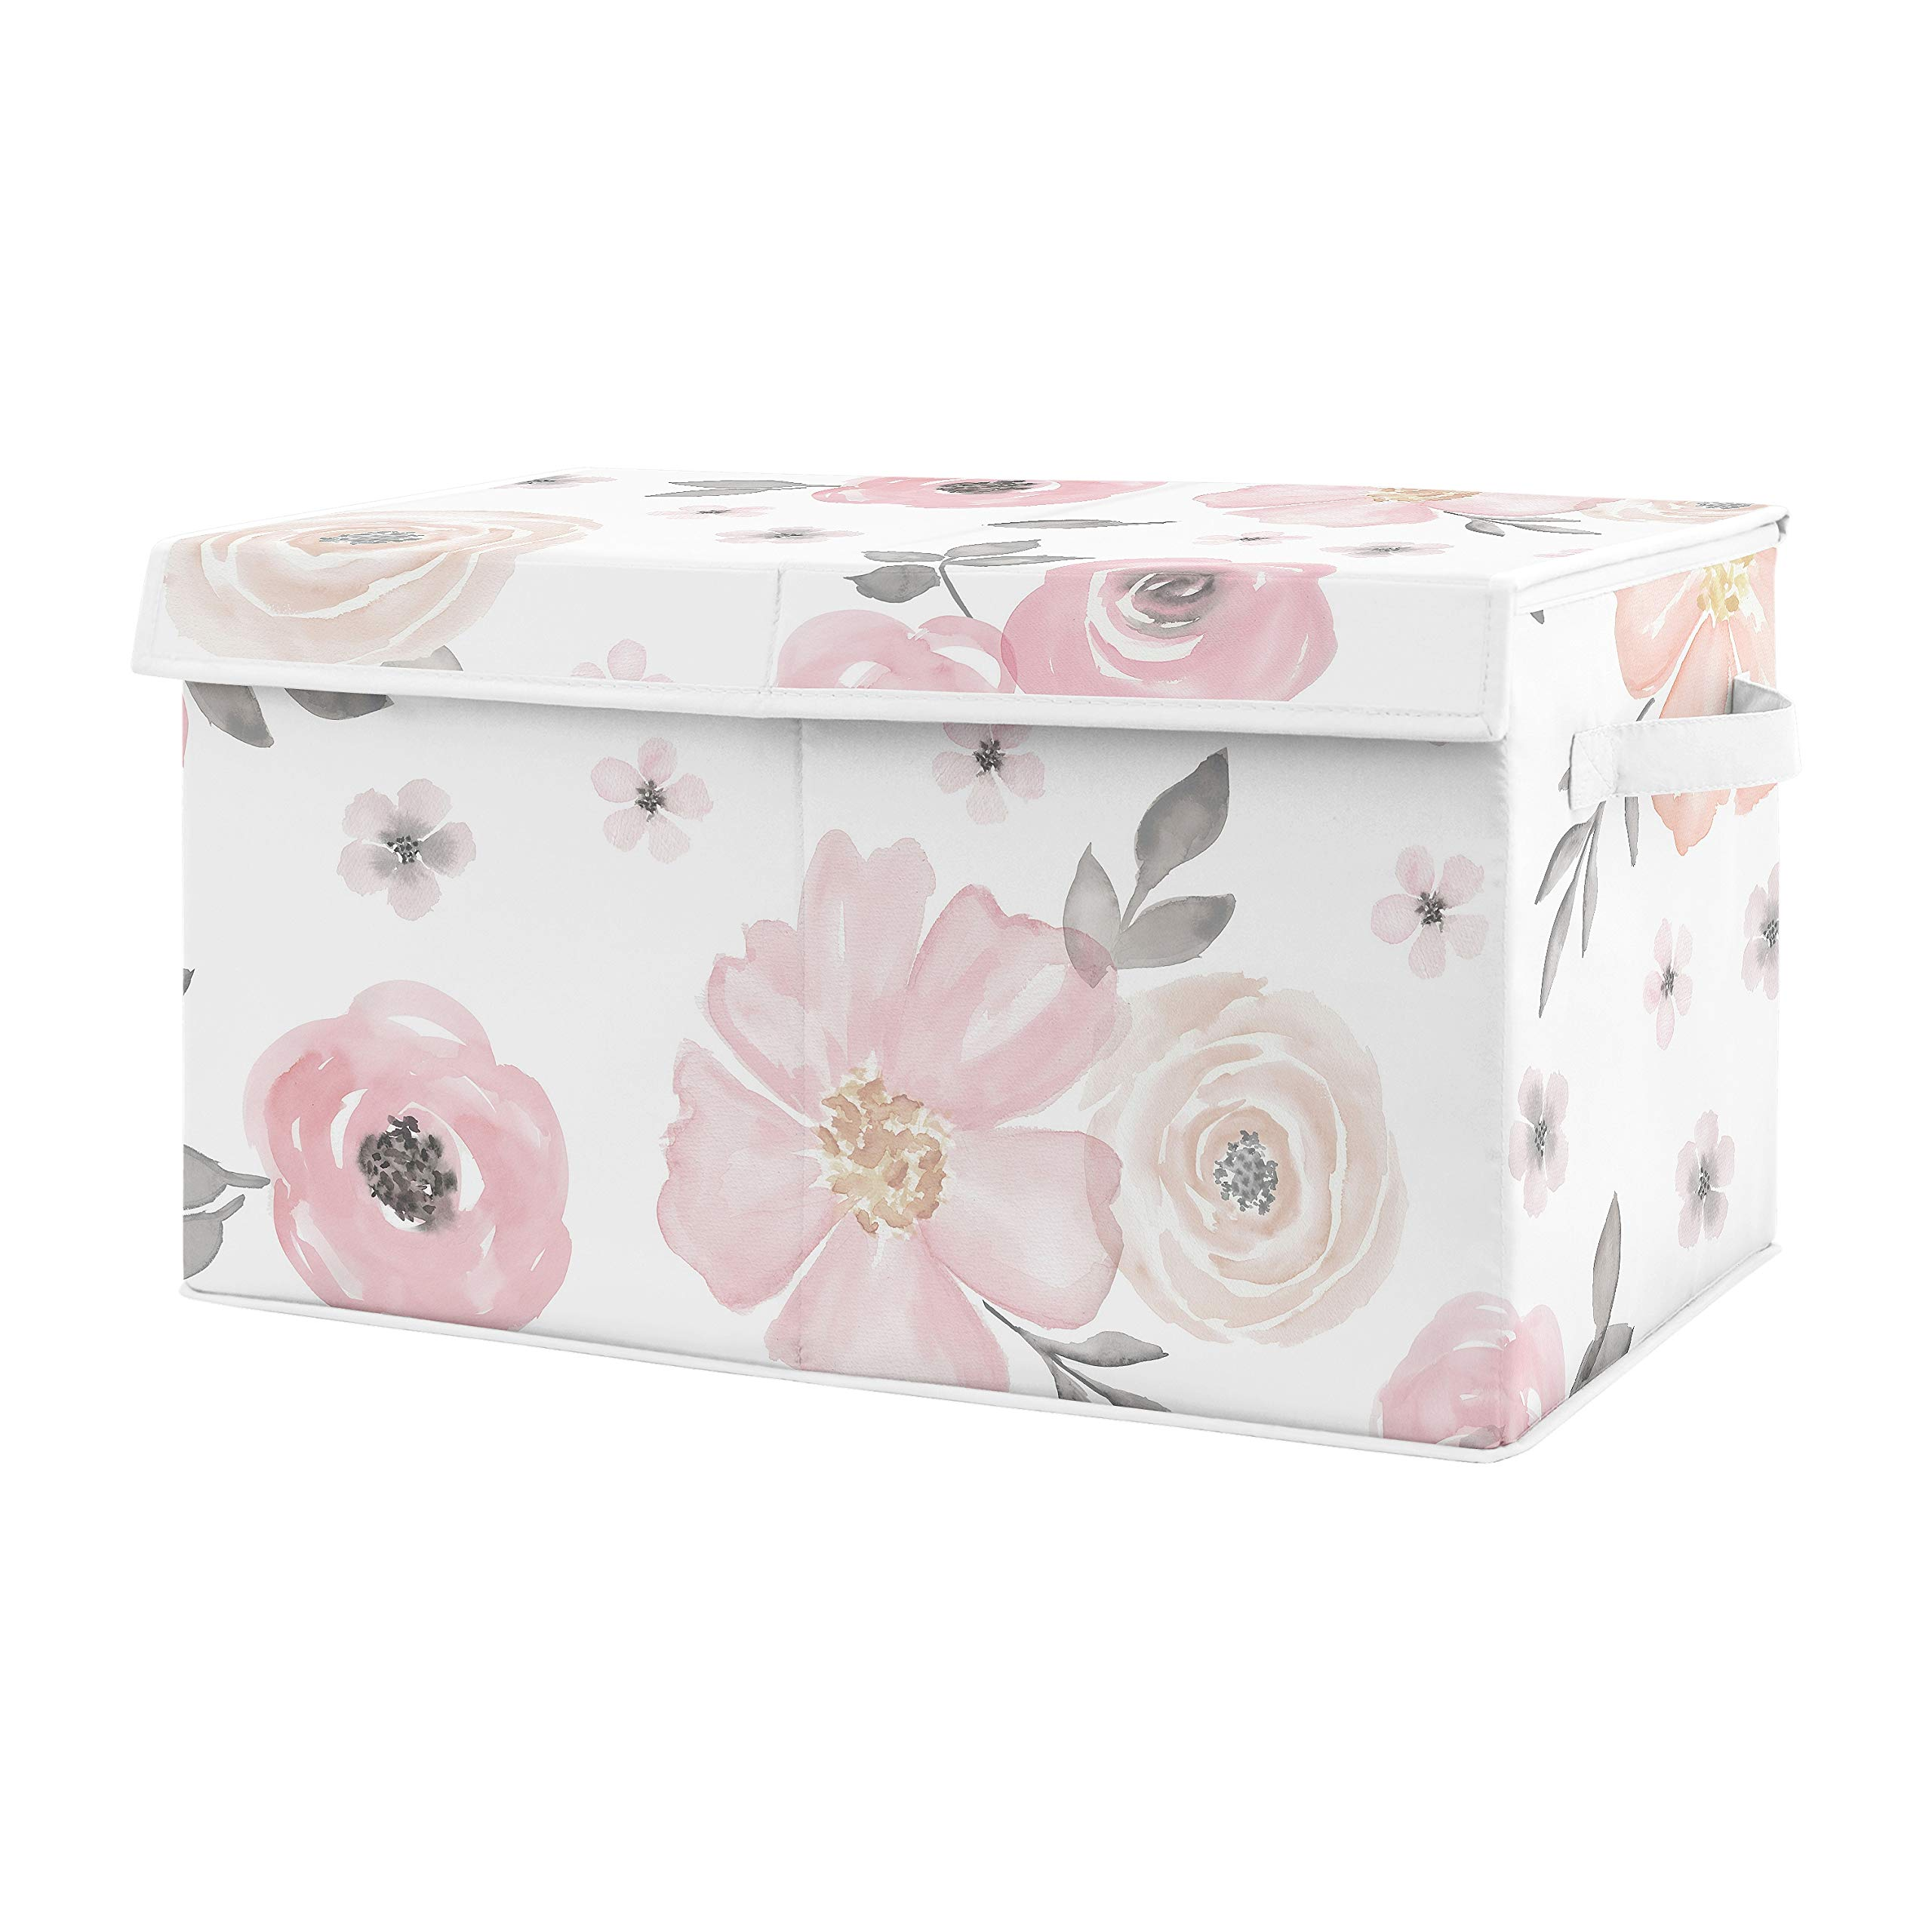 Sweet Jojo Designs Pink and Grey Rose Flower Girl Baby Nursery or Kids Room Small Fabric Toy Bin Storage Box Chest for Watercolor Floral Collection